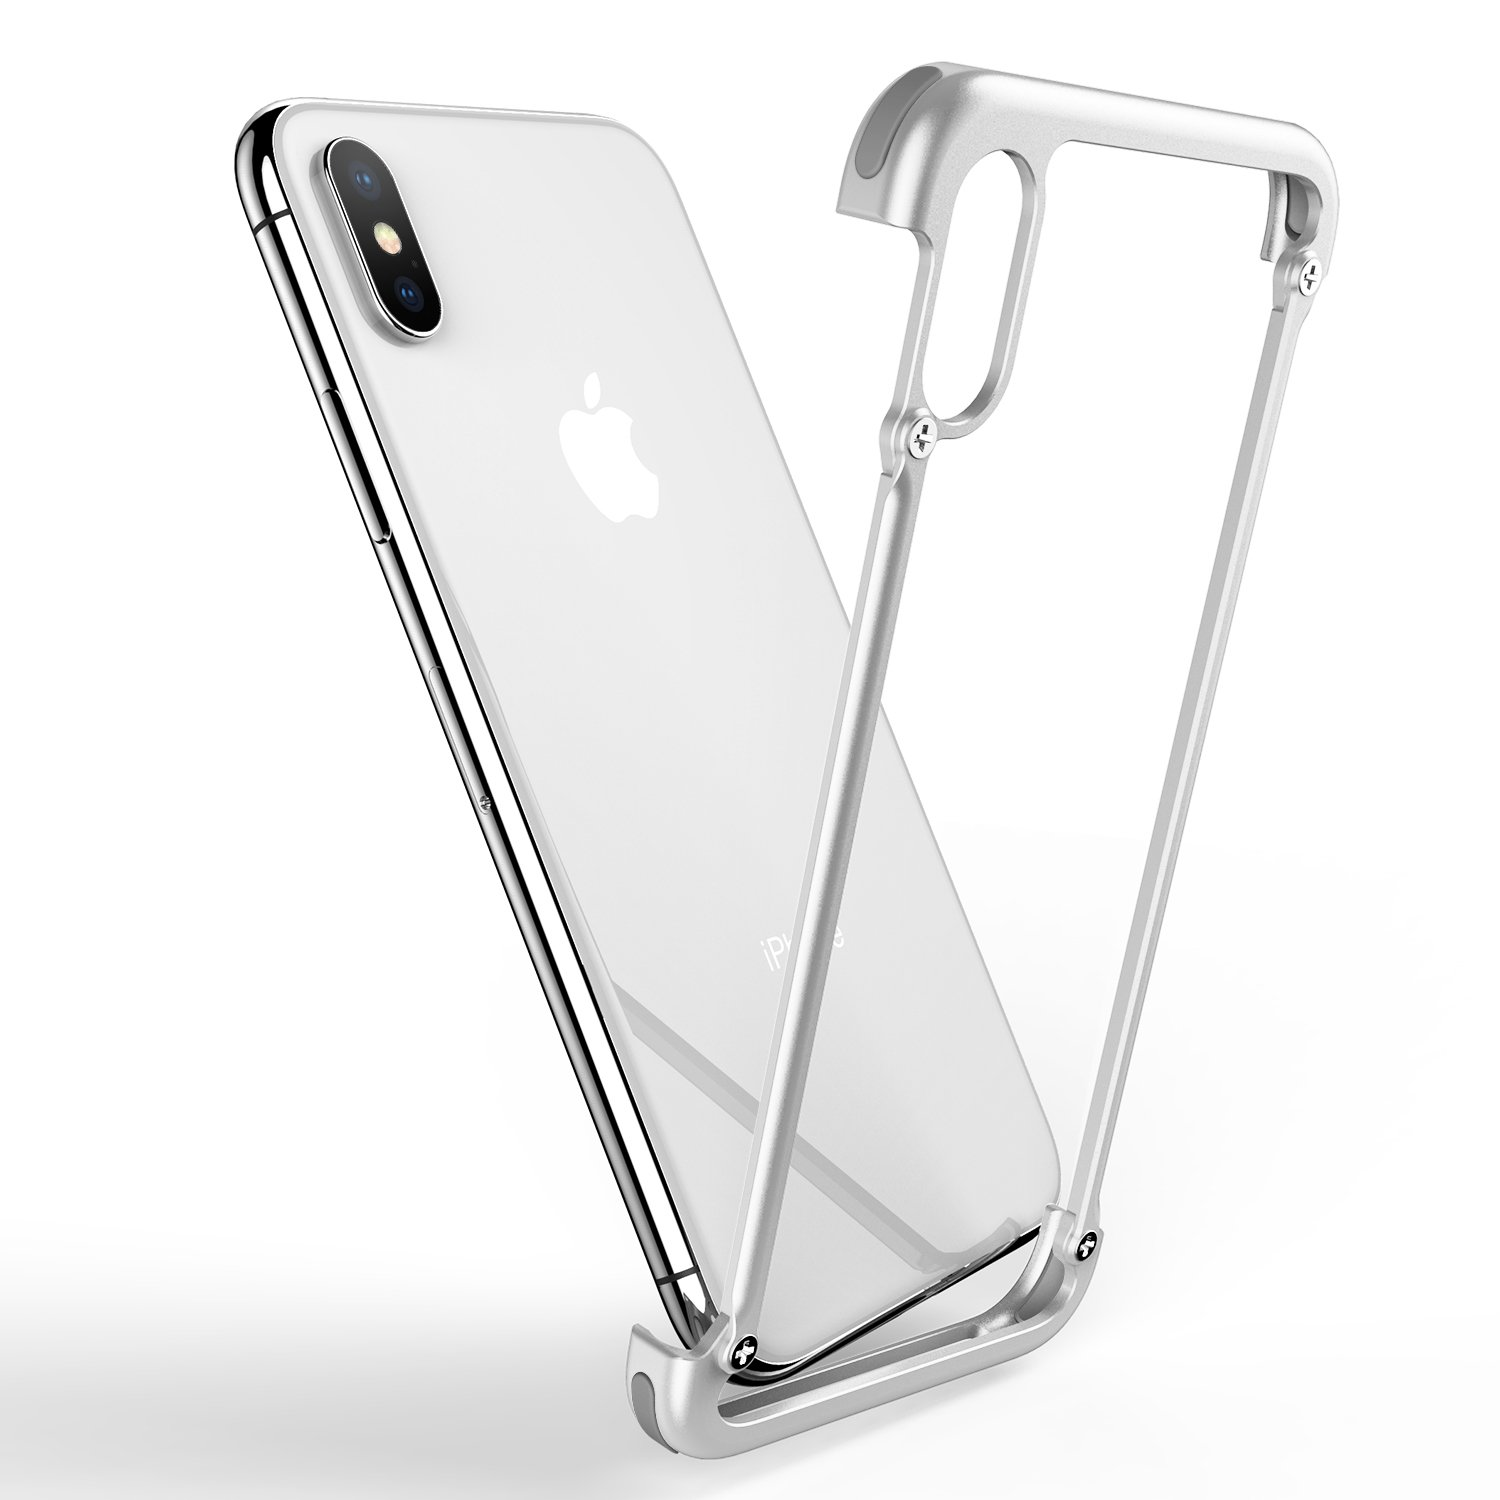 OATSBASF for iPhone X/XS Bumper, Rugged iPhone X/XS Metal Bumper Case Shockproof Frame Case Slim Fit Ultra Thin Bumper [Support Wireless Charge][Extra 2 Protector] for iPhone X/XS